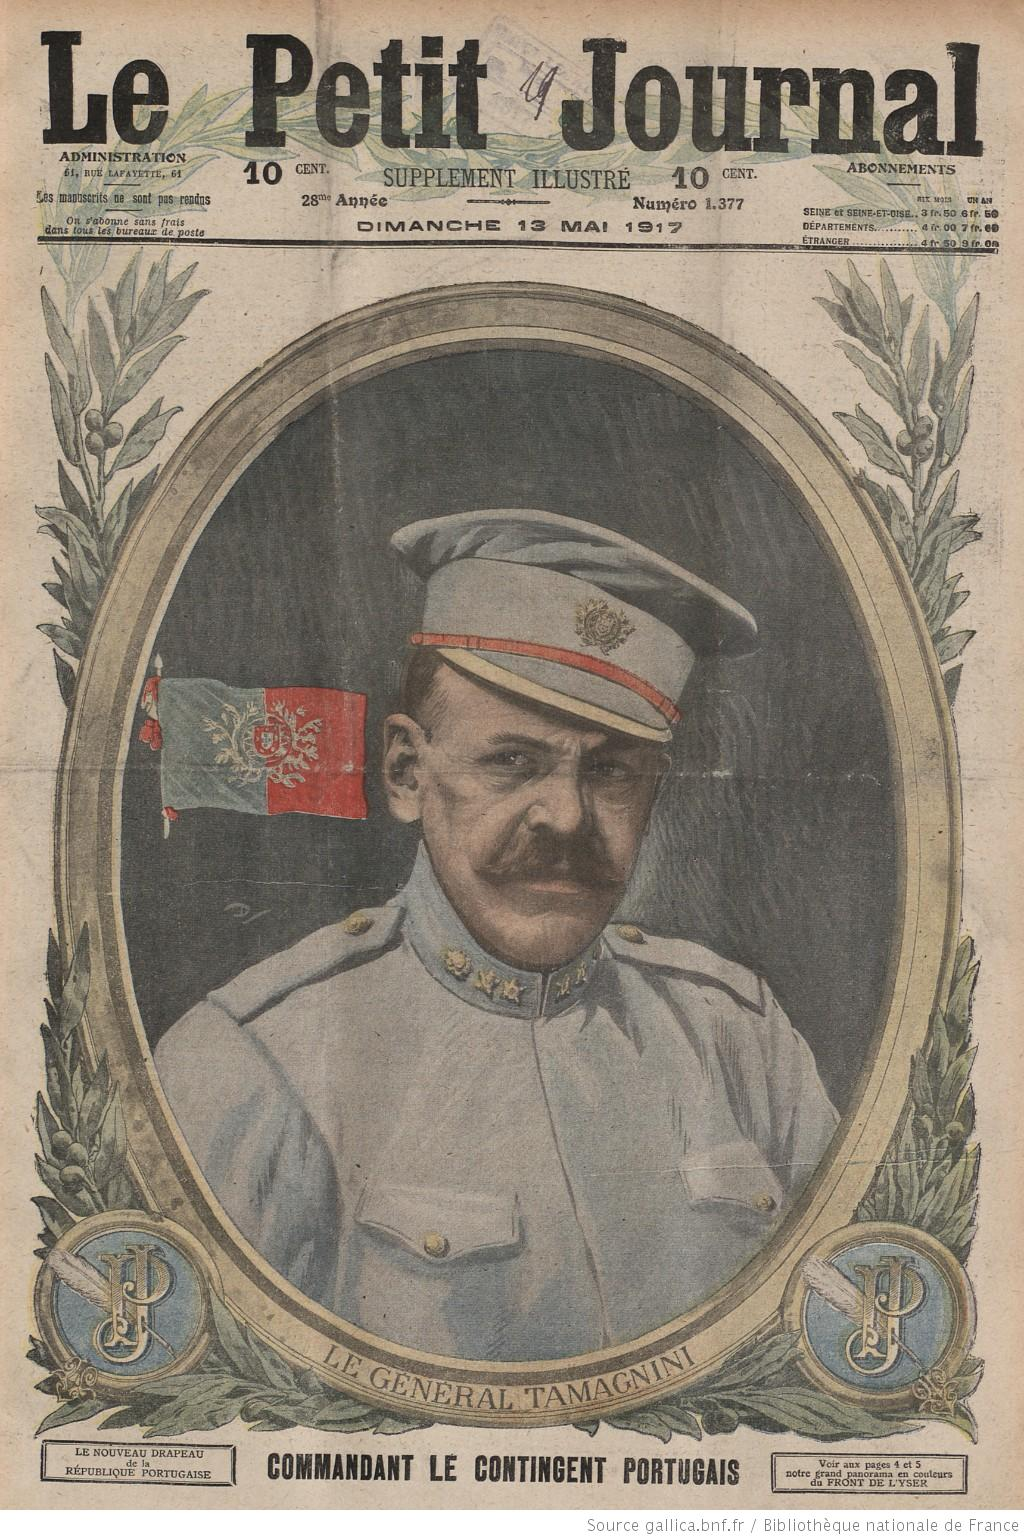 LPJ Illustre 1917-05-13 A.jpg